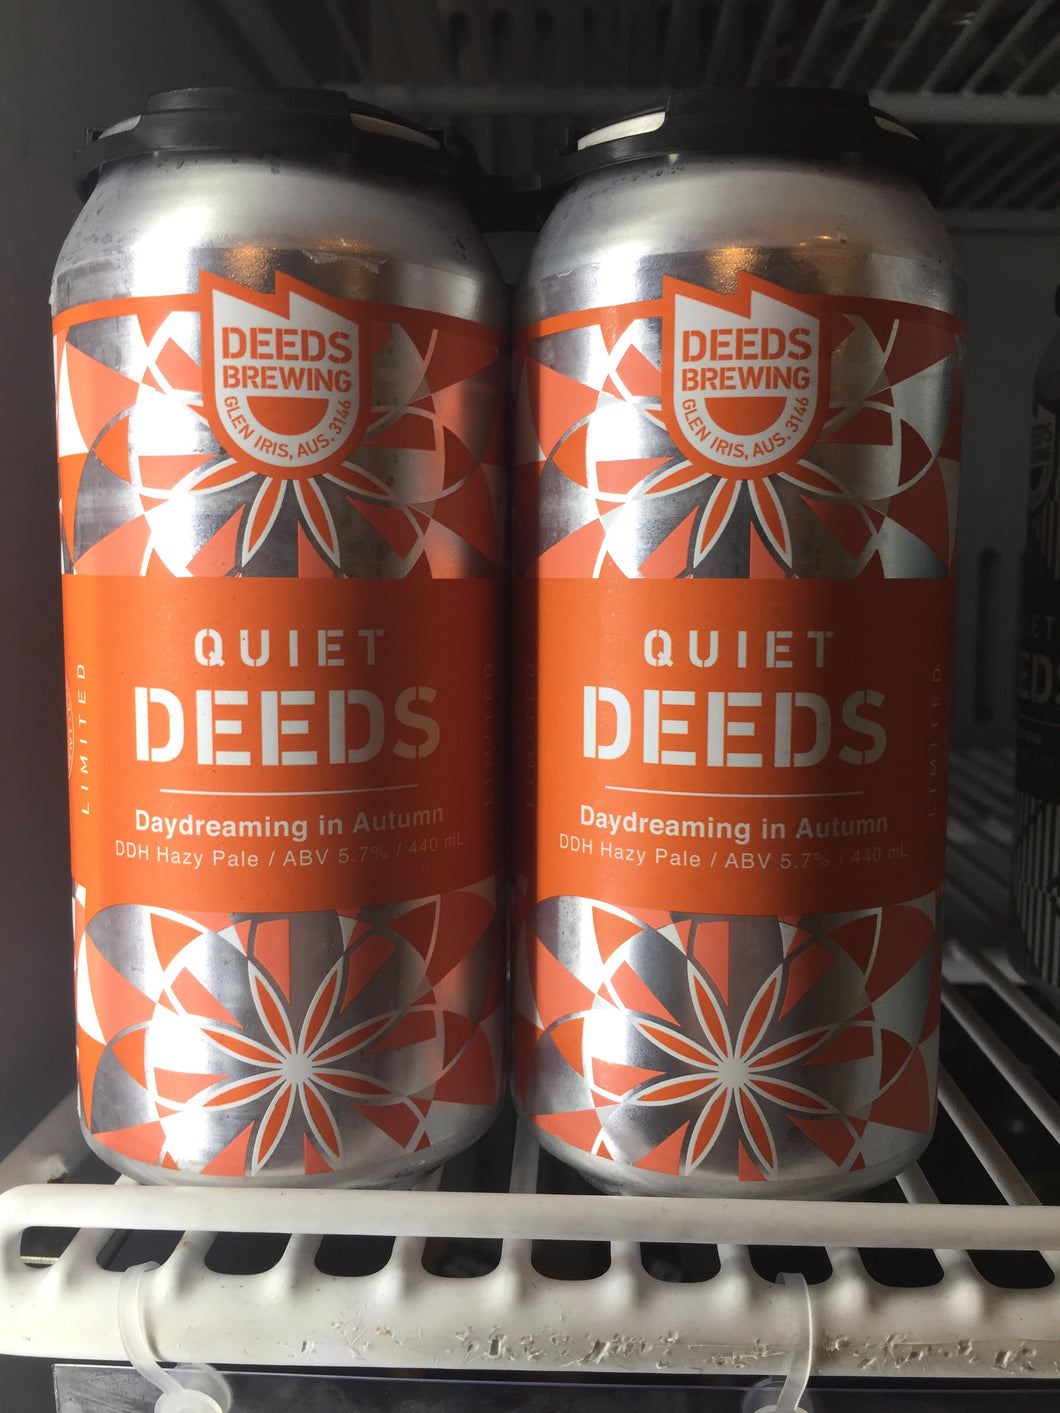 Deeds Daydreaming in Autumn DDH Pale